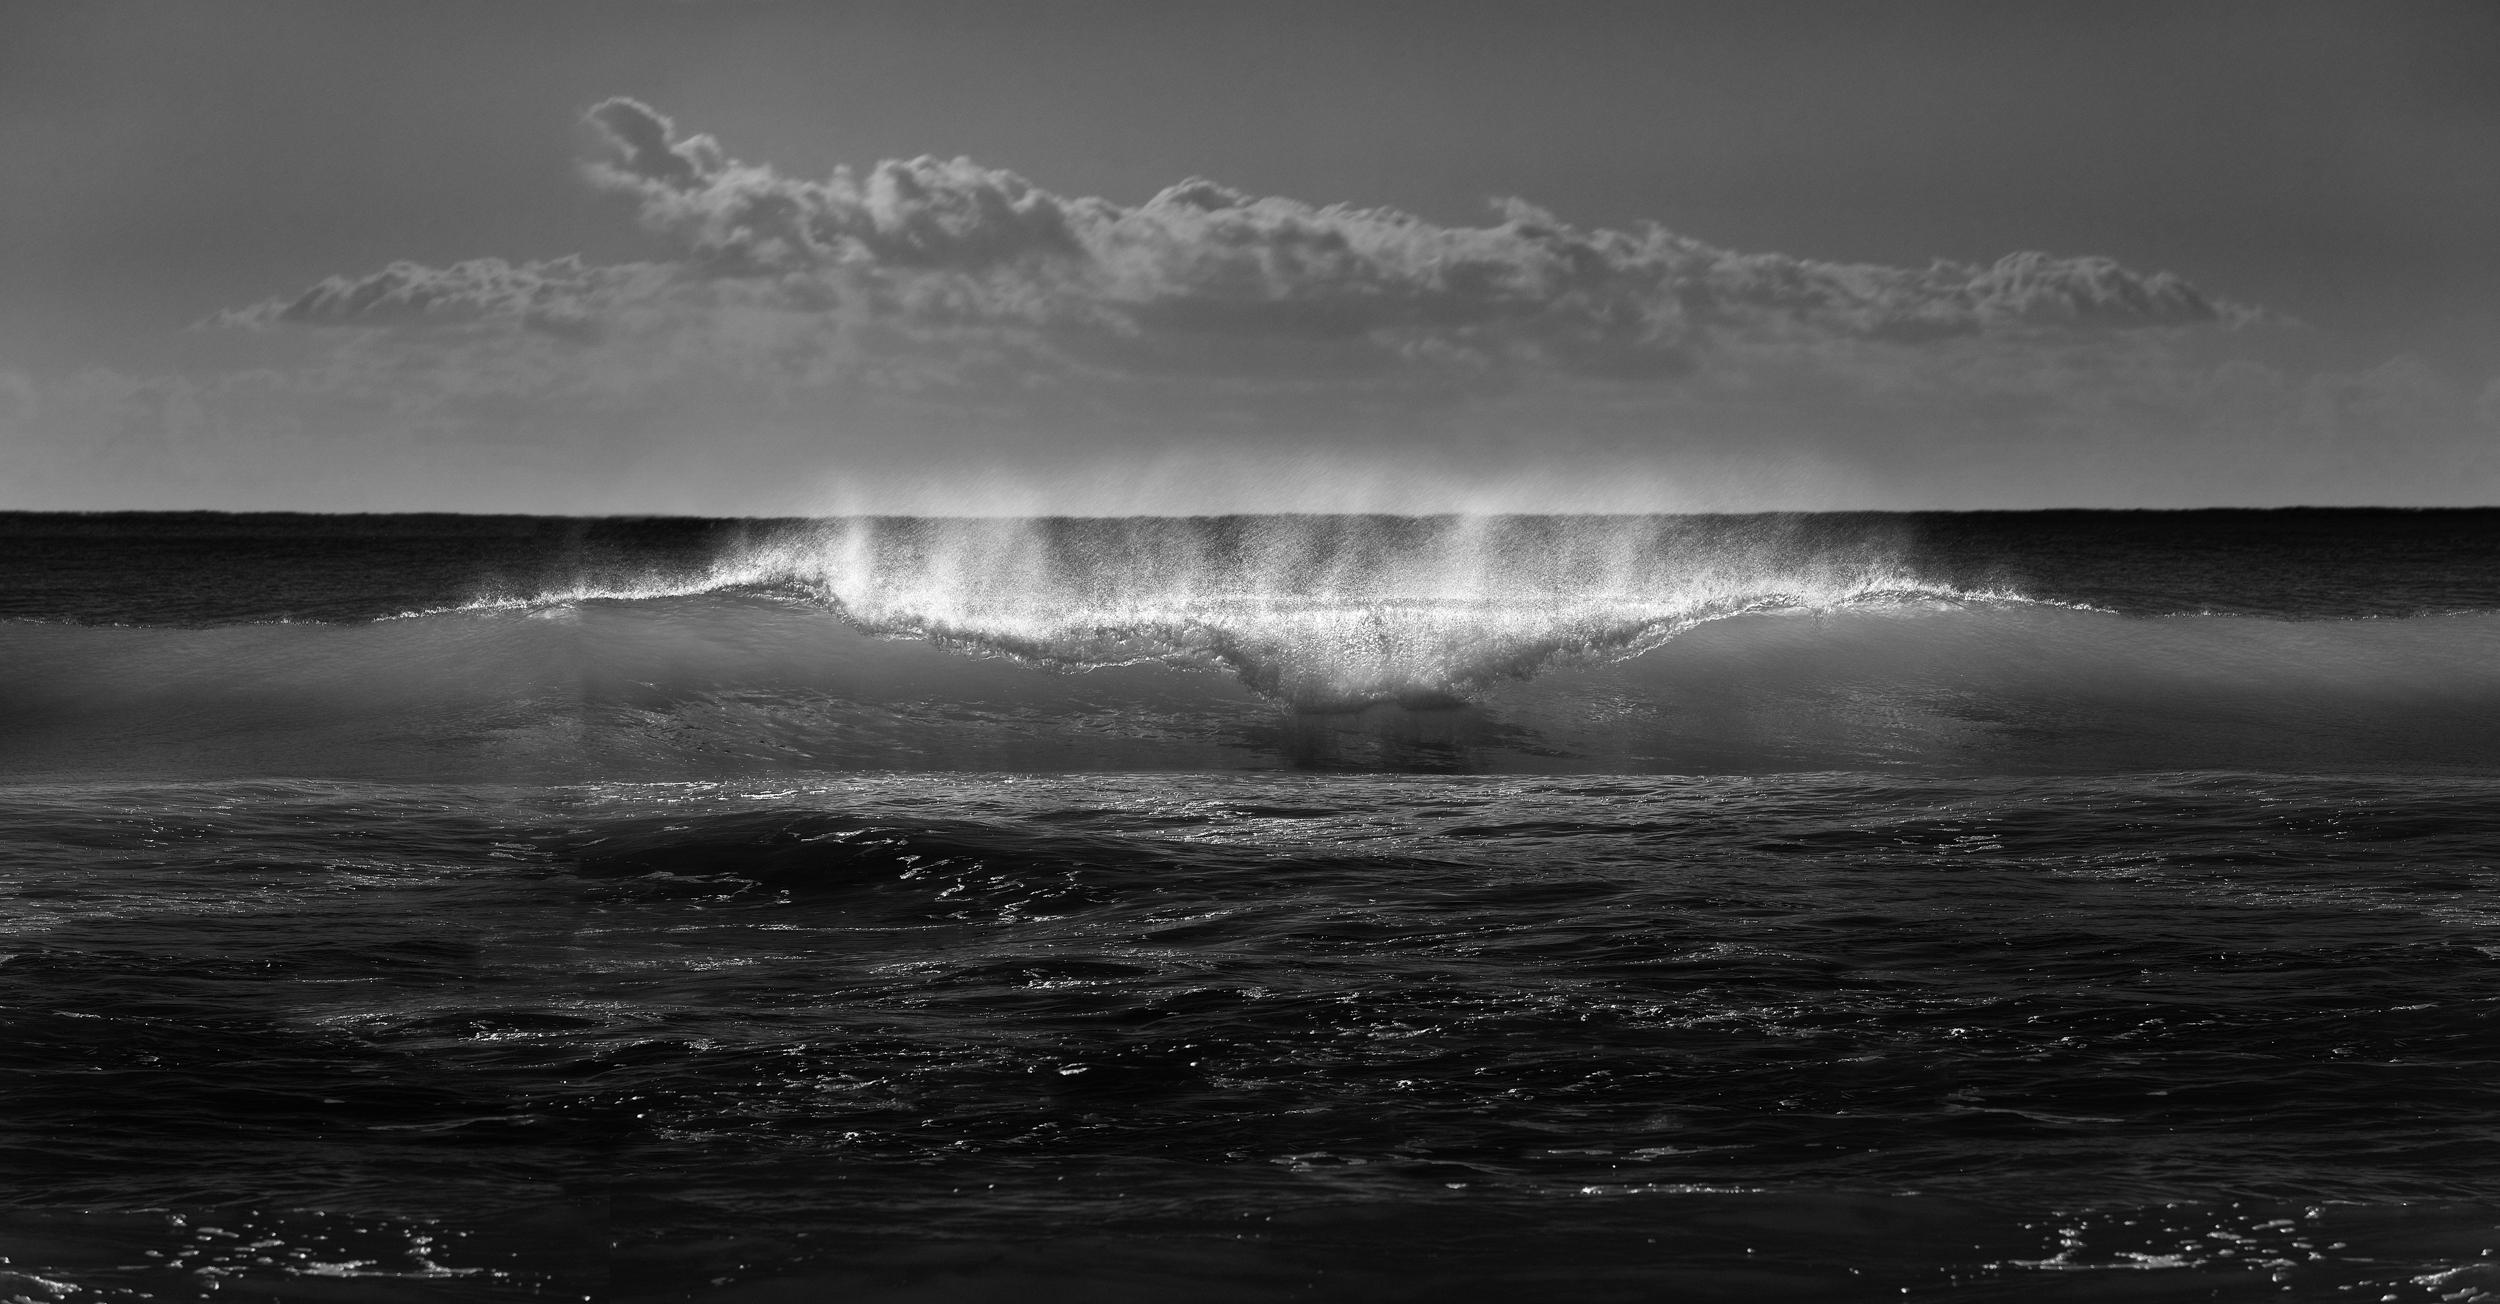 Wave 2 - Signed limited edition fine art print, Black and white photography, Sea